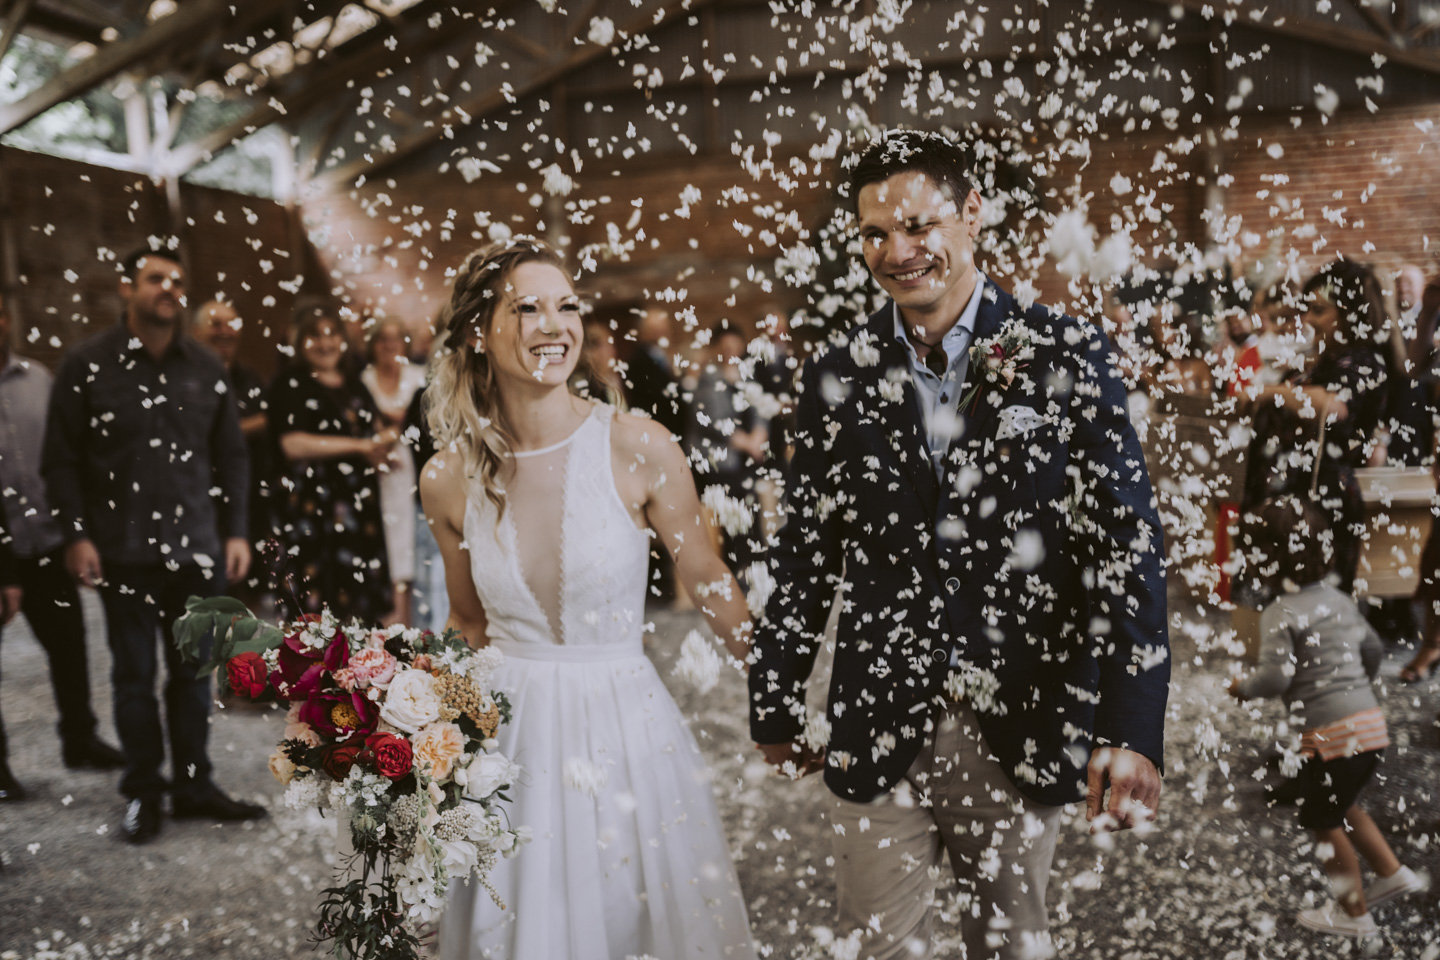 SHARNI + MICHAEL   DAVID LE PHOTOGRAPHY + DESIGN    THE OLD MILL   In print + featured on WIld Hearts  here